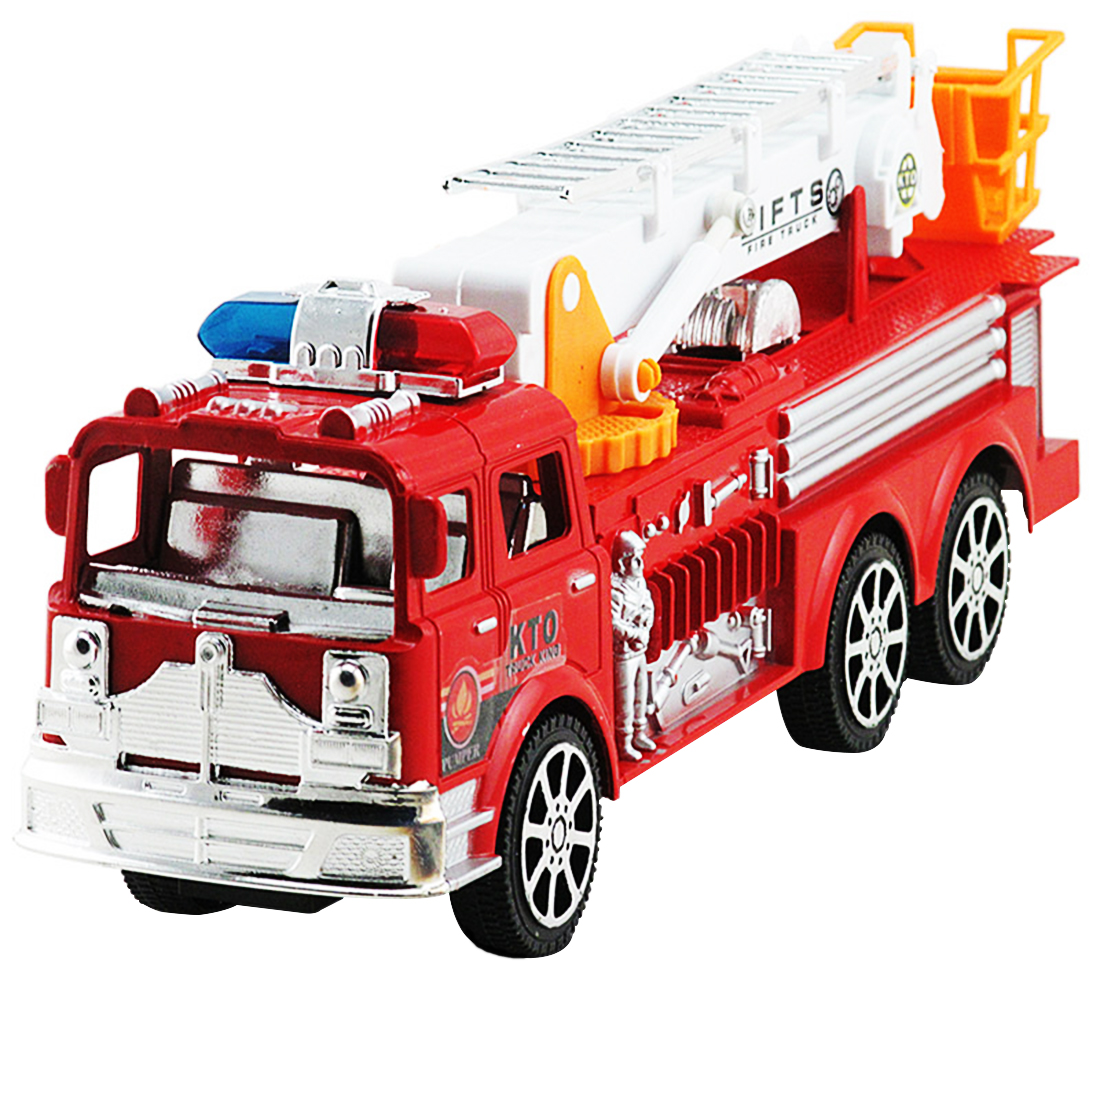 Pretend Play Firemen Large Size Artificial Aerial Ladder Truck Fire Fighting Truck Model For Kids Learning Playing Toys For Kids